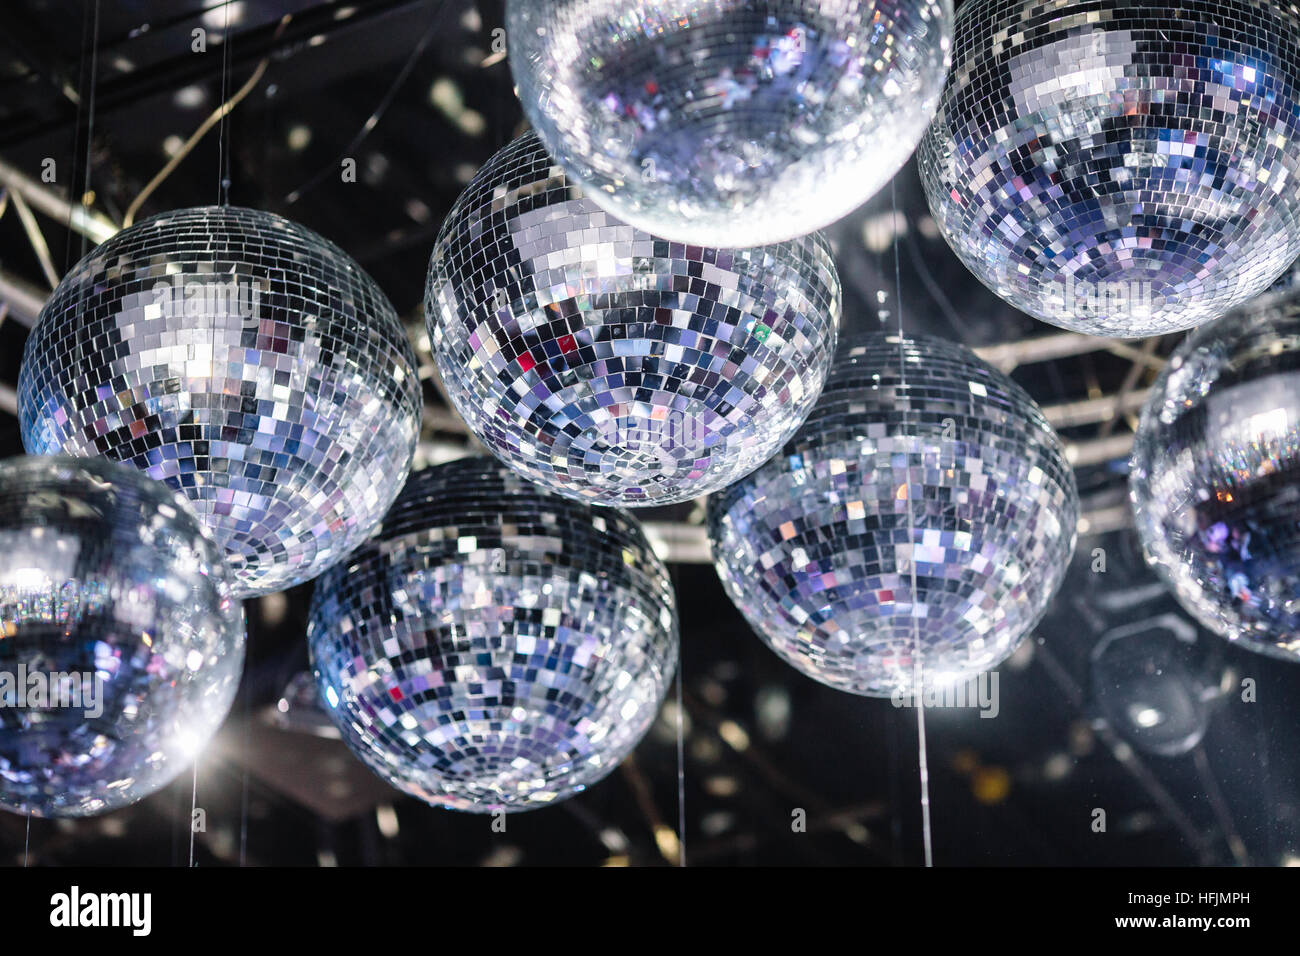 Disco balls on the ceiling stock photo royalty free image disco balls on the ceiling aloadofball Image collections